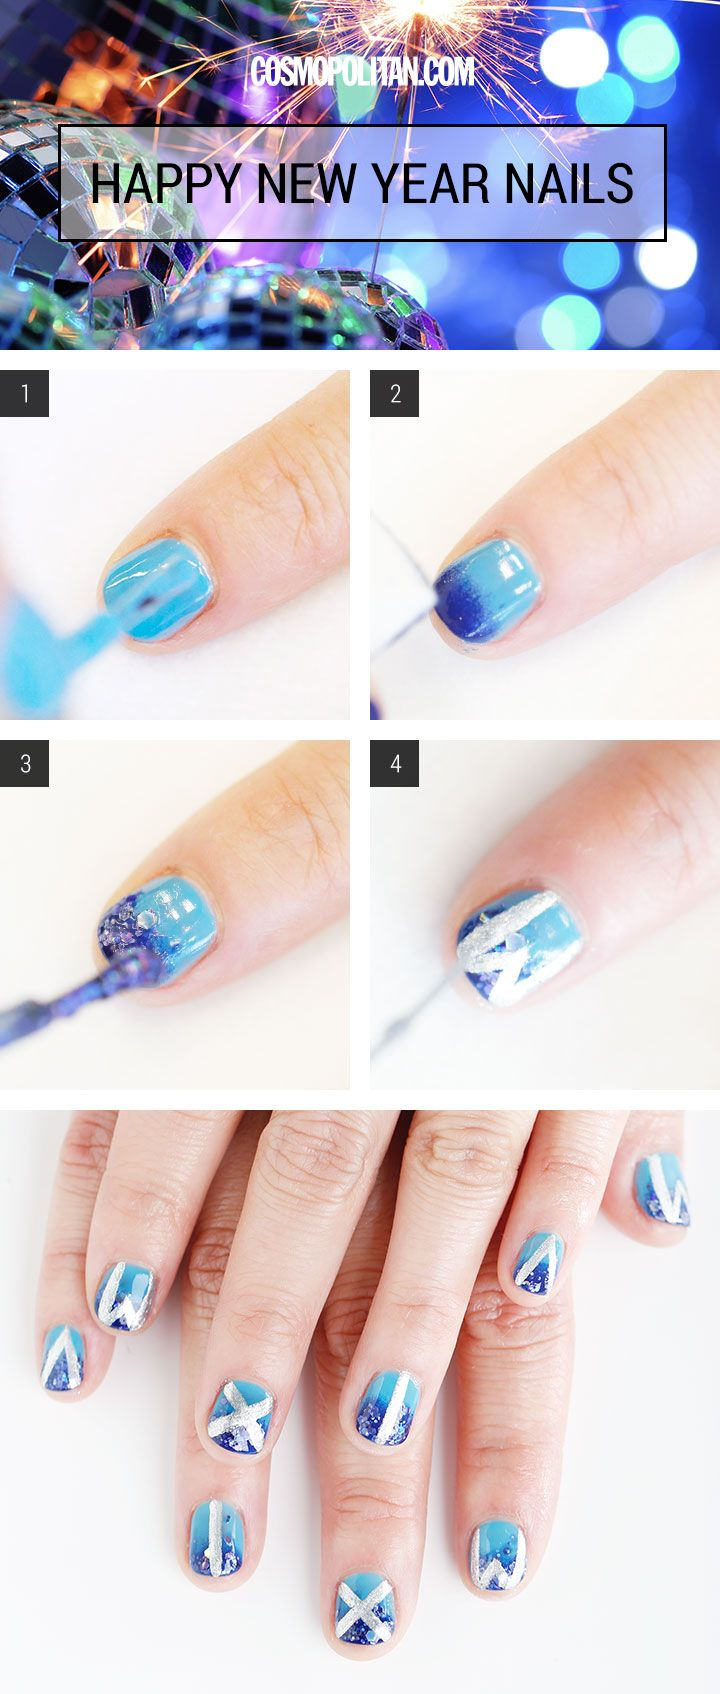 Nail Art HowTo New Year's Day Nails New years nail art